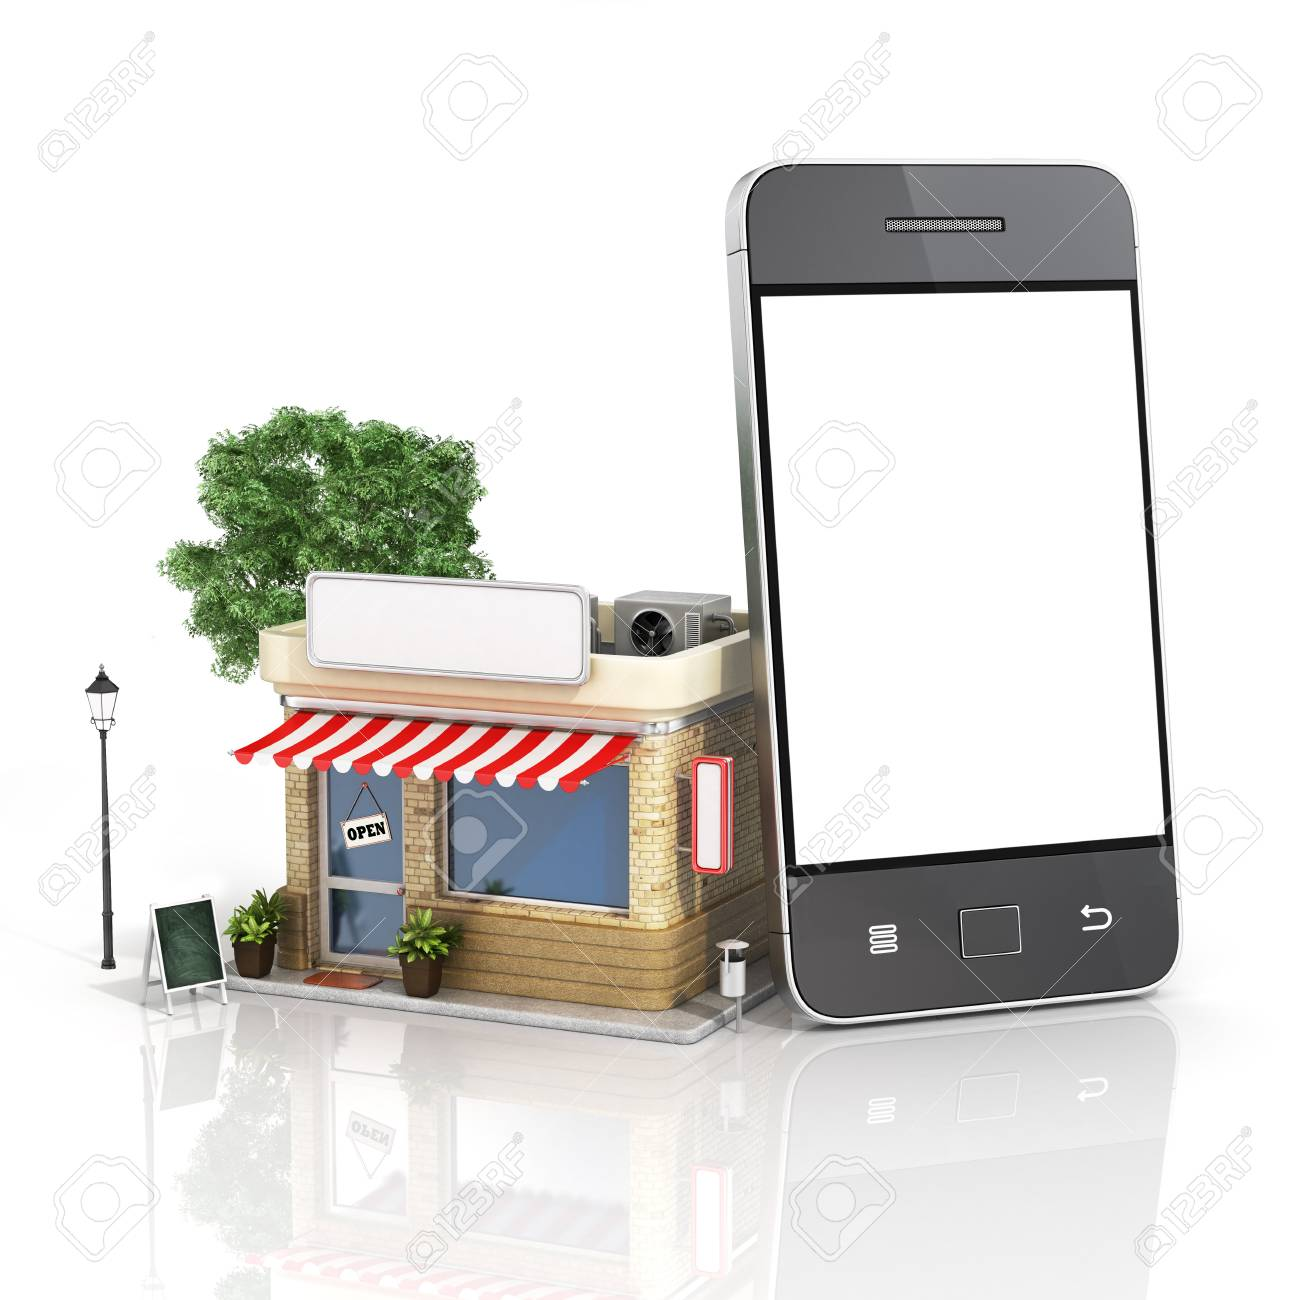 4e9047335a2 Concept of phone online store. Online store mobile flat design. Beautiful  shop with phone